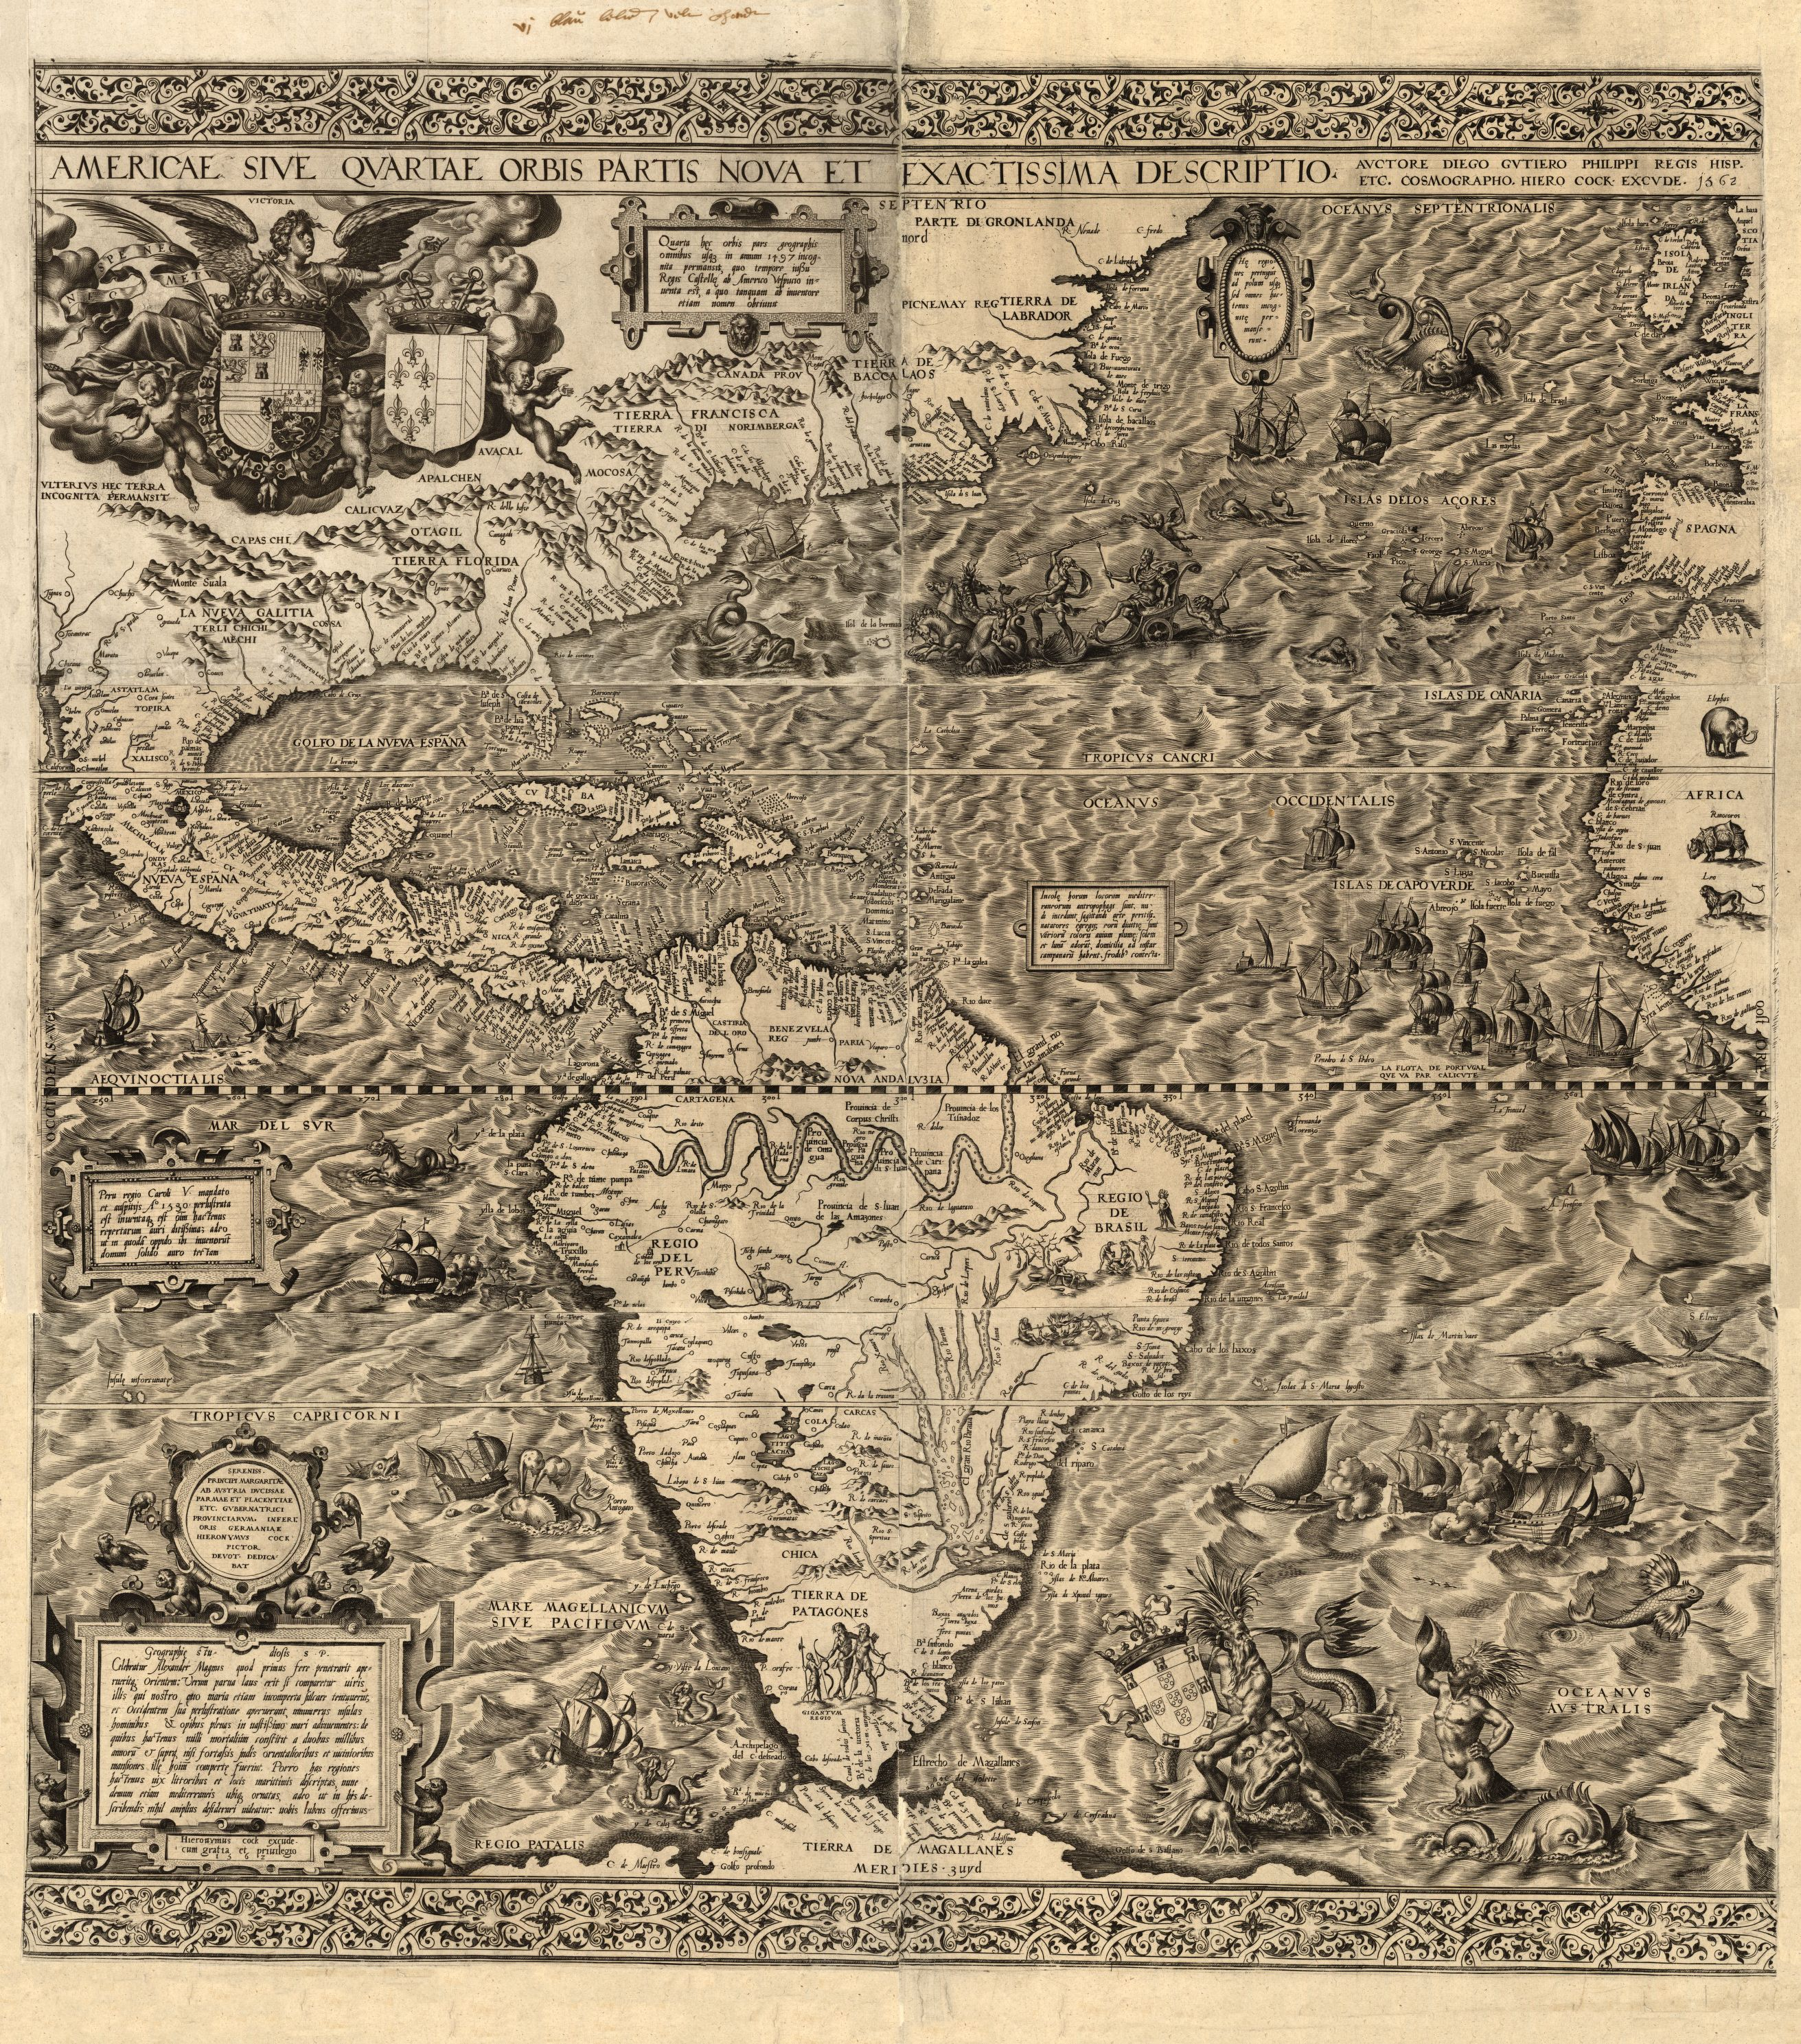 A map of the Americas in 1562, a collaboration by 16th Century Spanish cartographer Diego Gutiérrez and noted Antwerb engraver Hieronymus Cock.